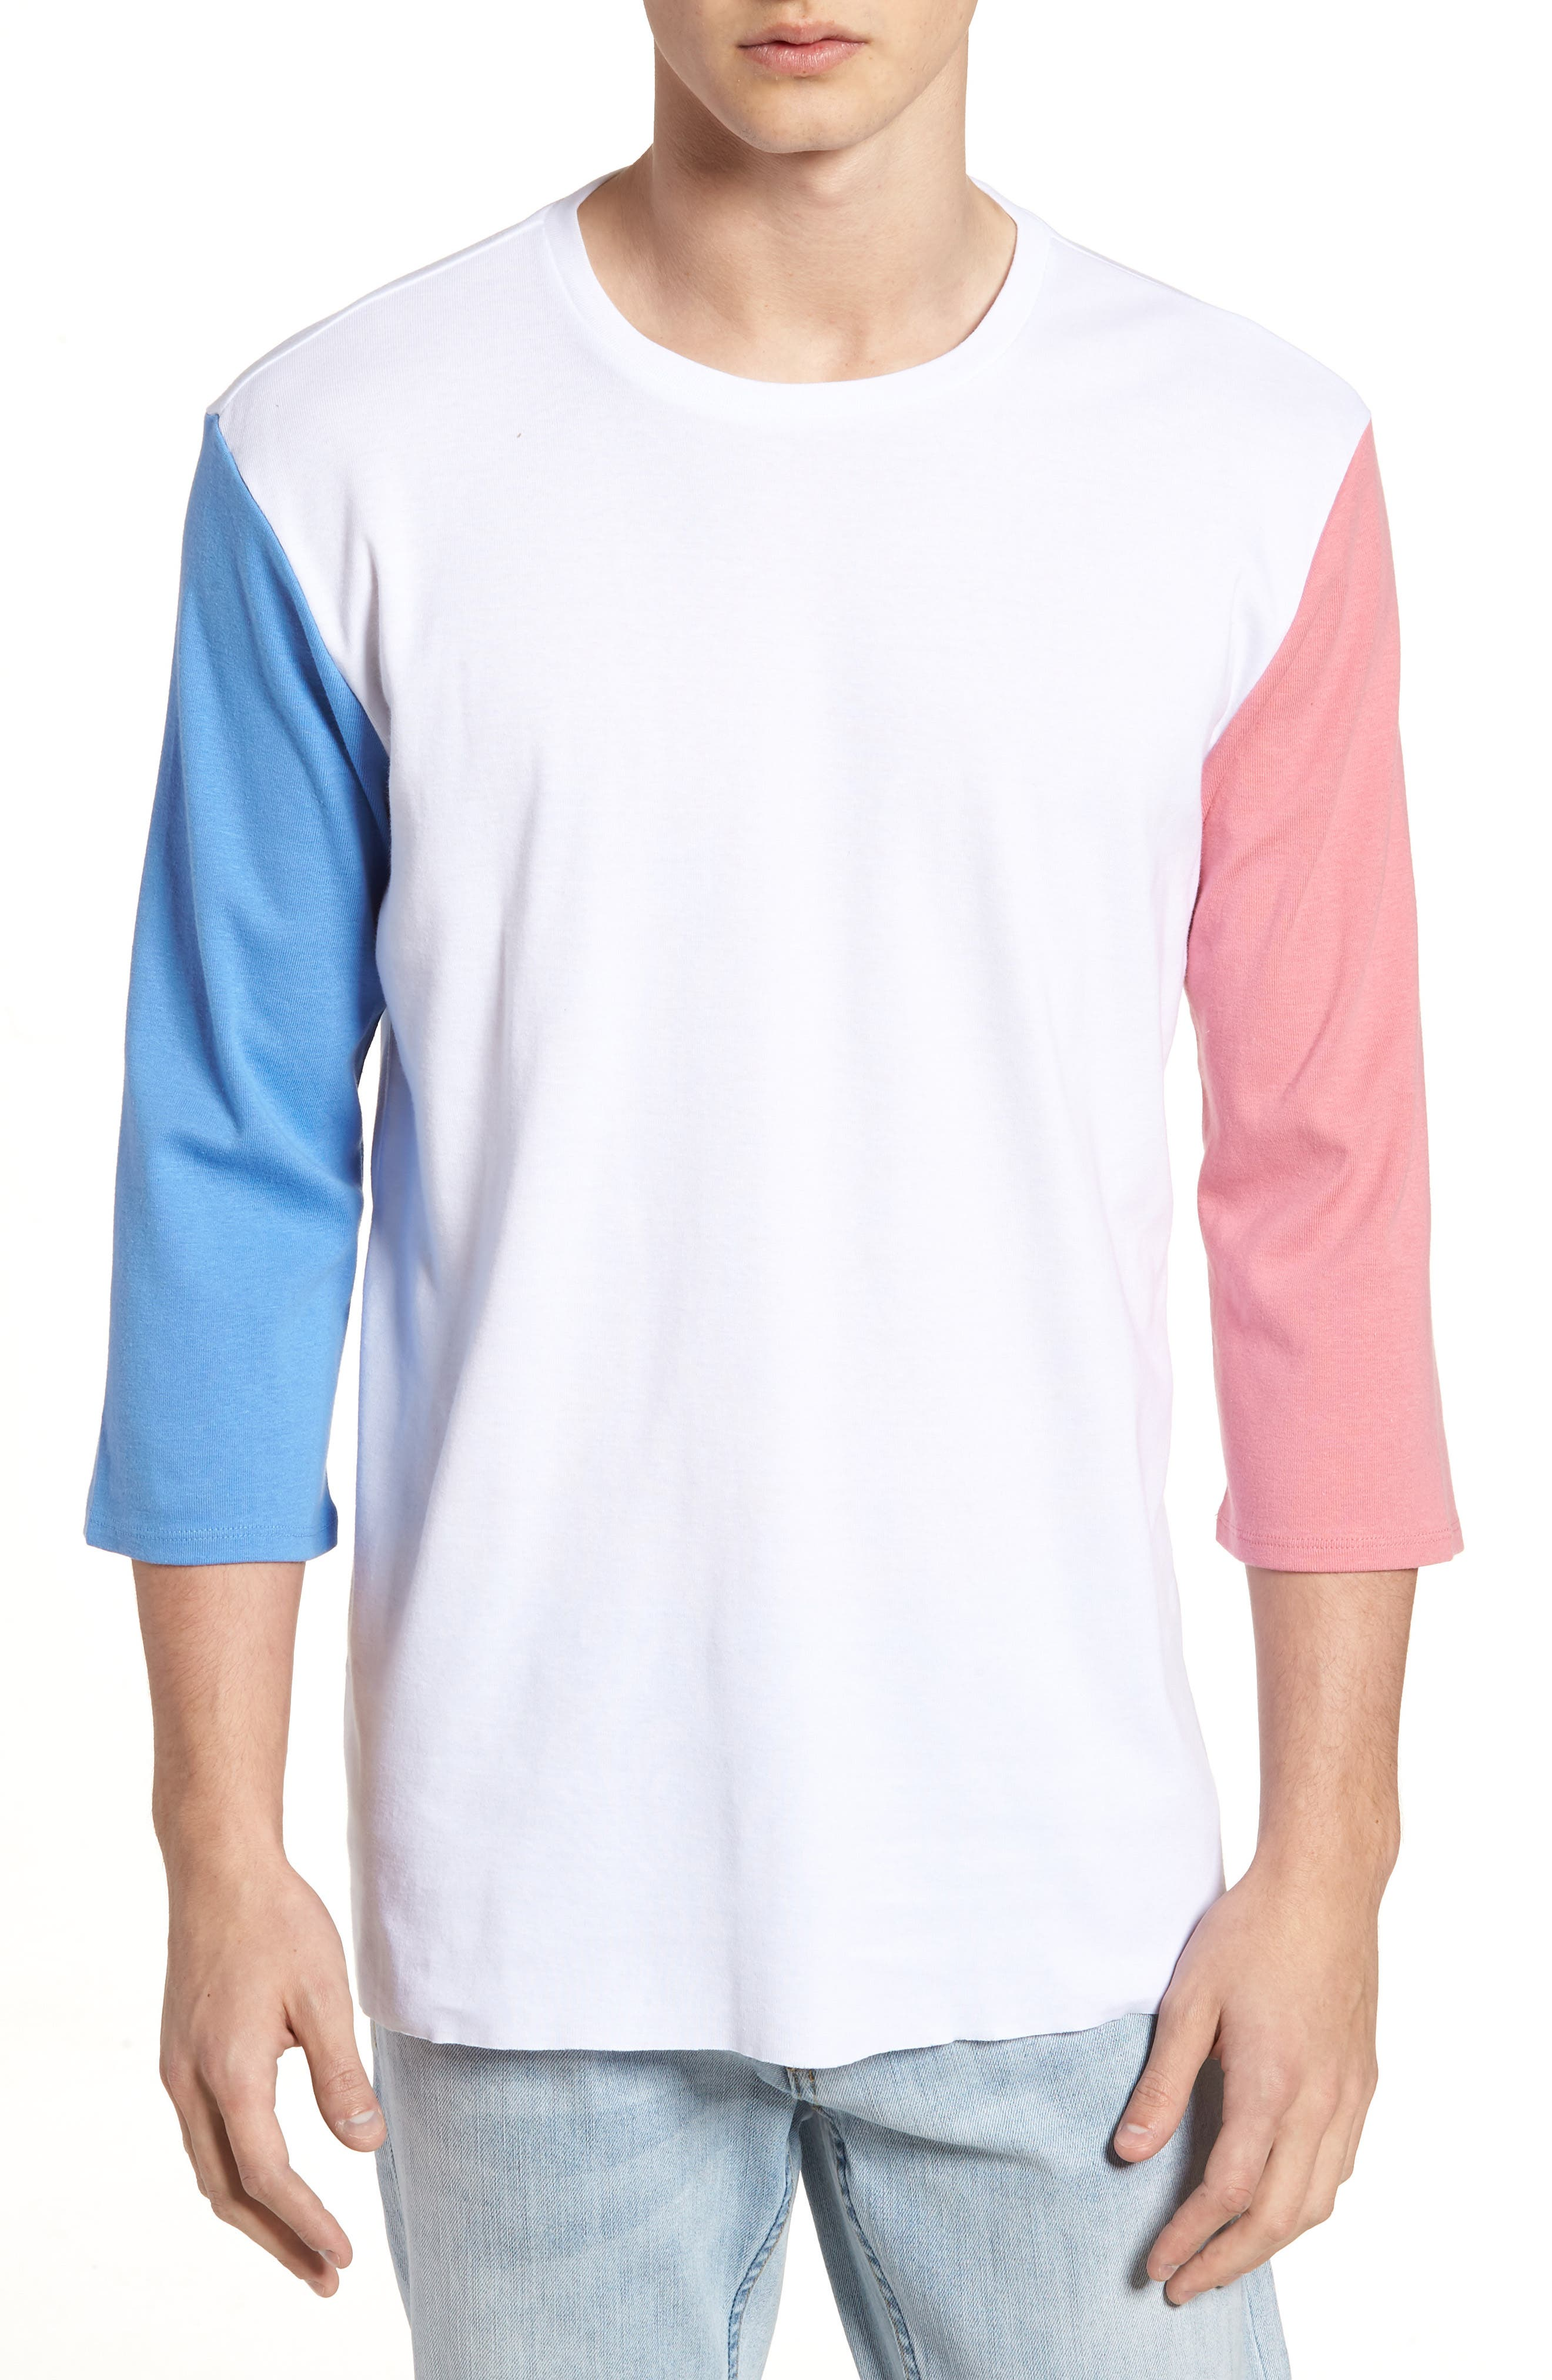 Contrast Sleeve T-Shirt,                             Main thumbnail 1, color,                             White/ Pink / Blue